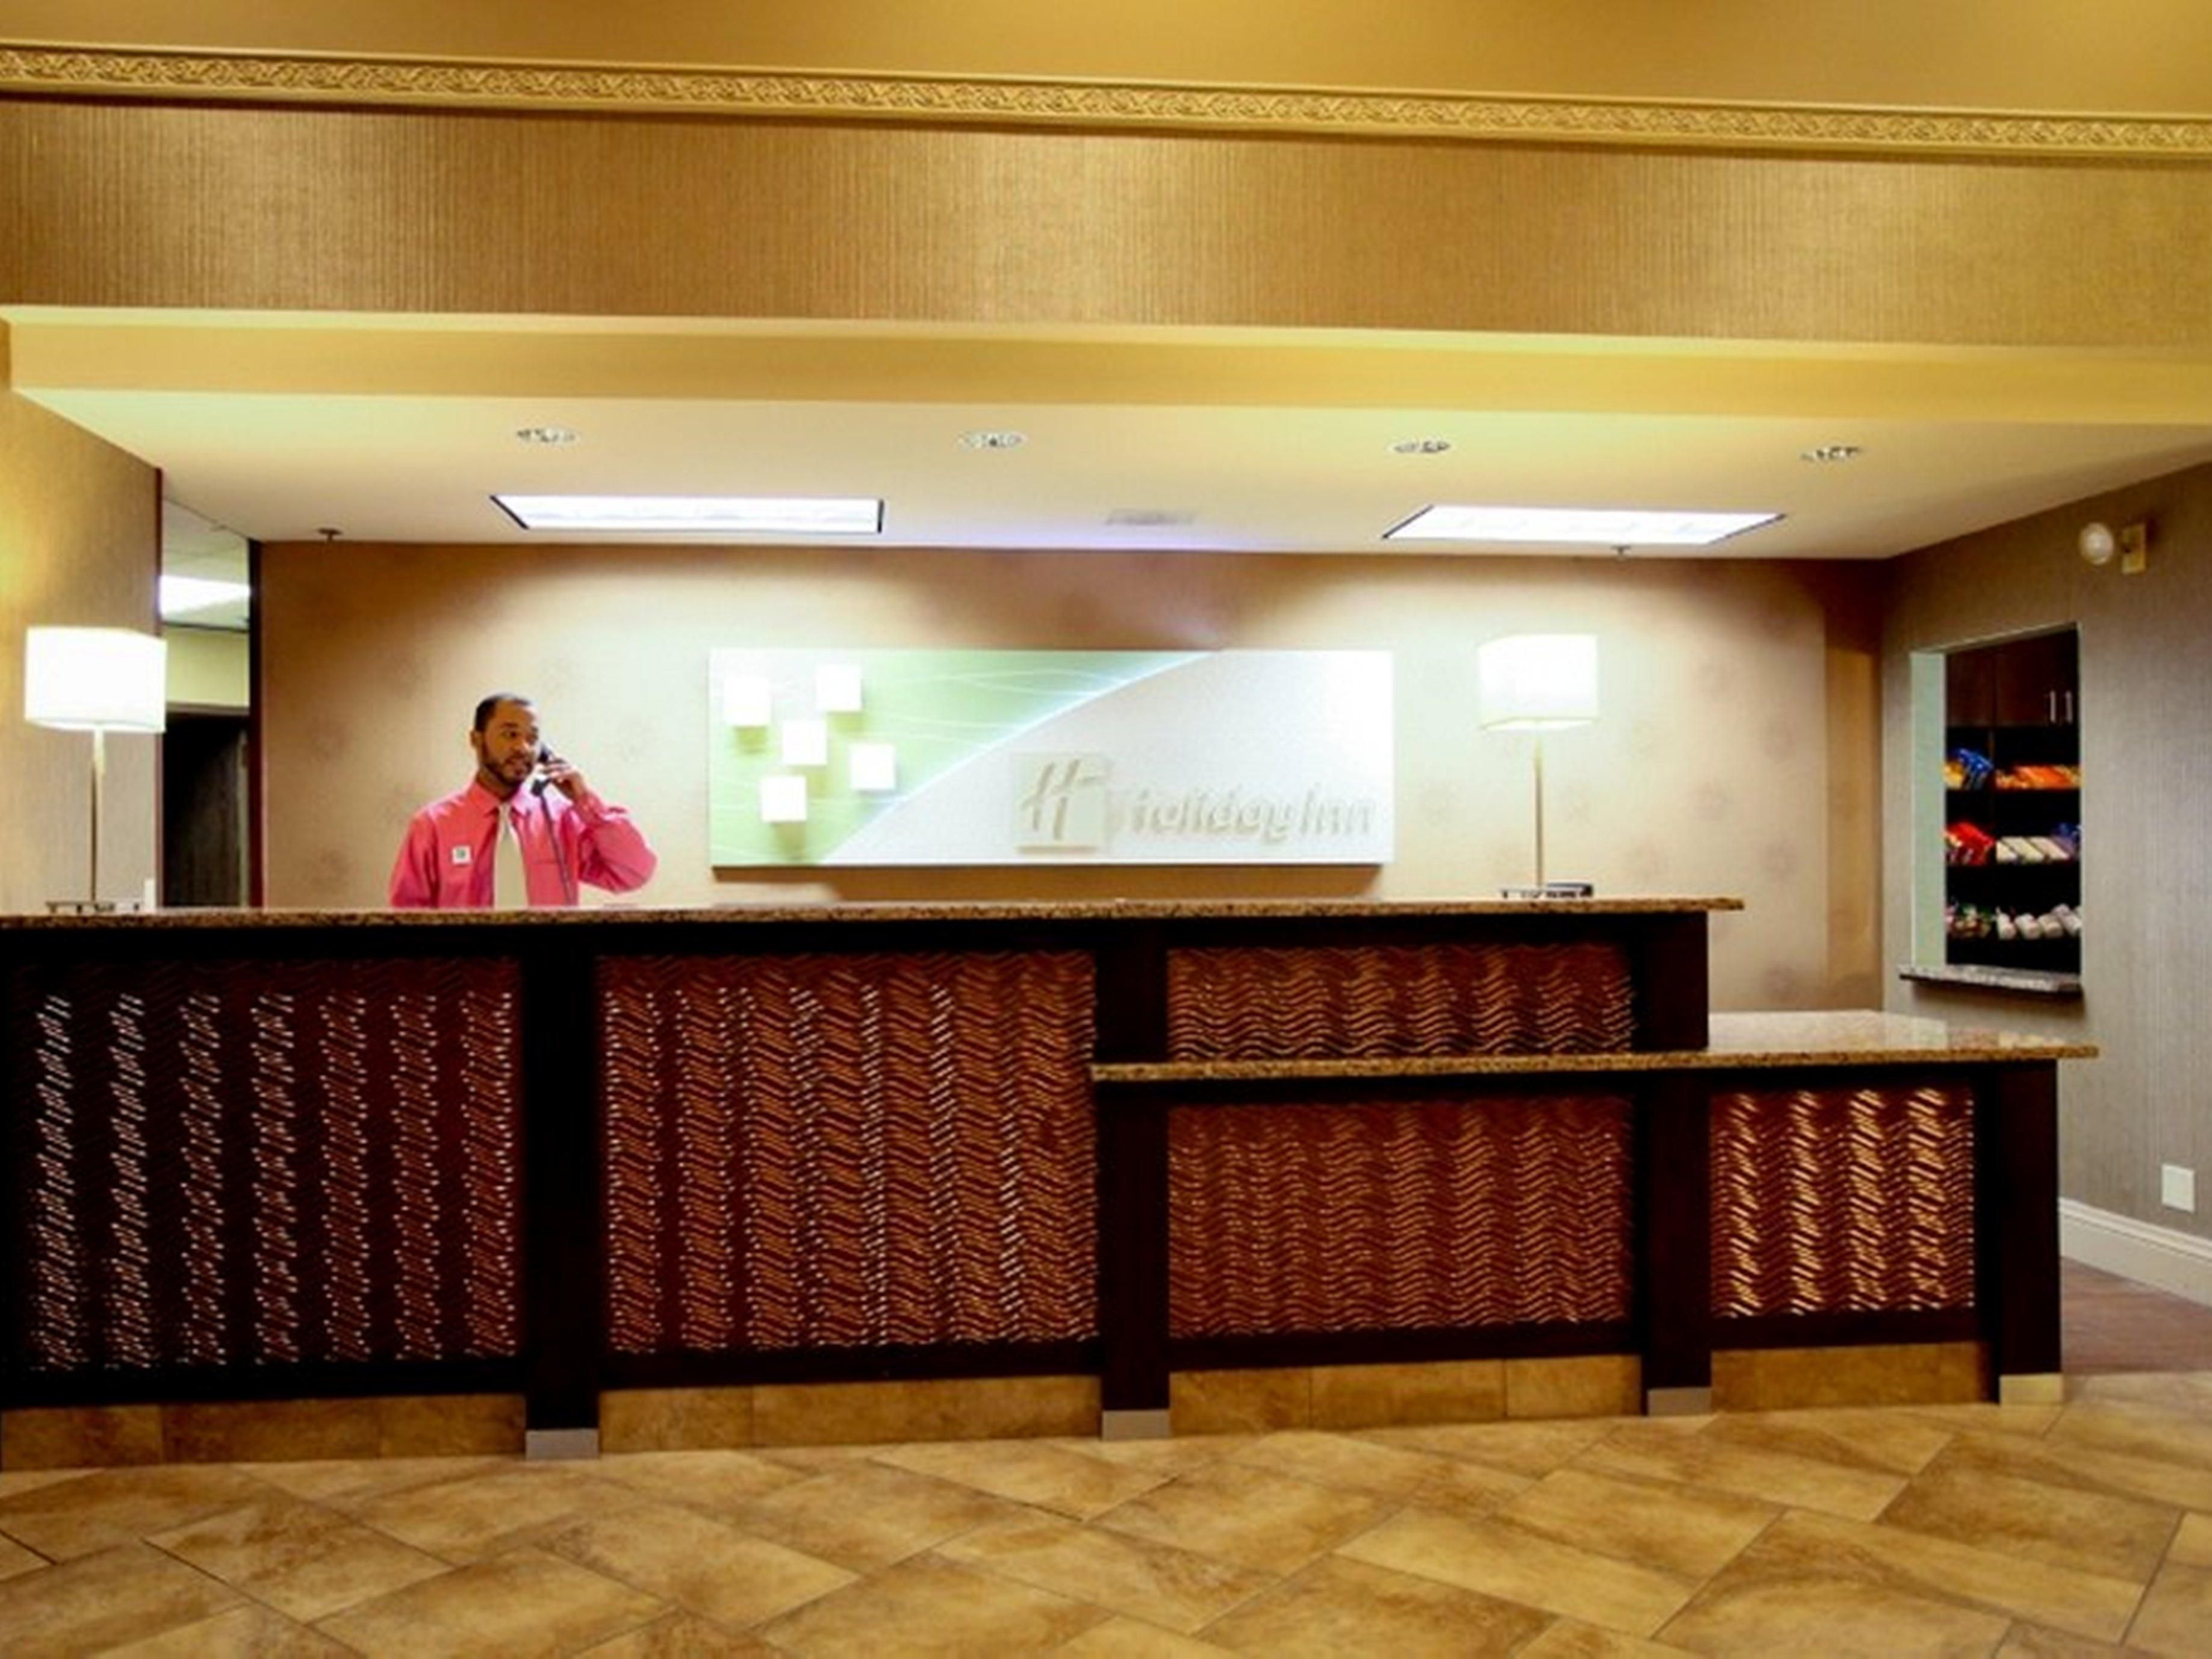 Our warm and welcoming staff is looking forward to your arrival.